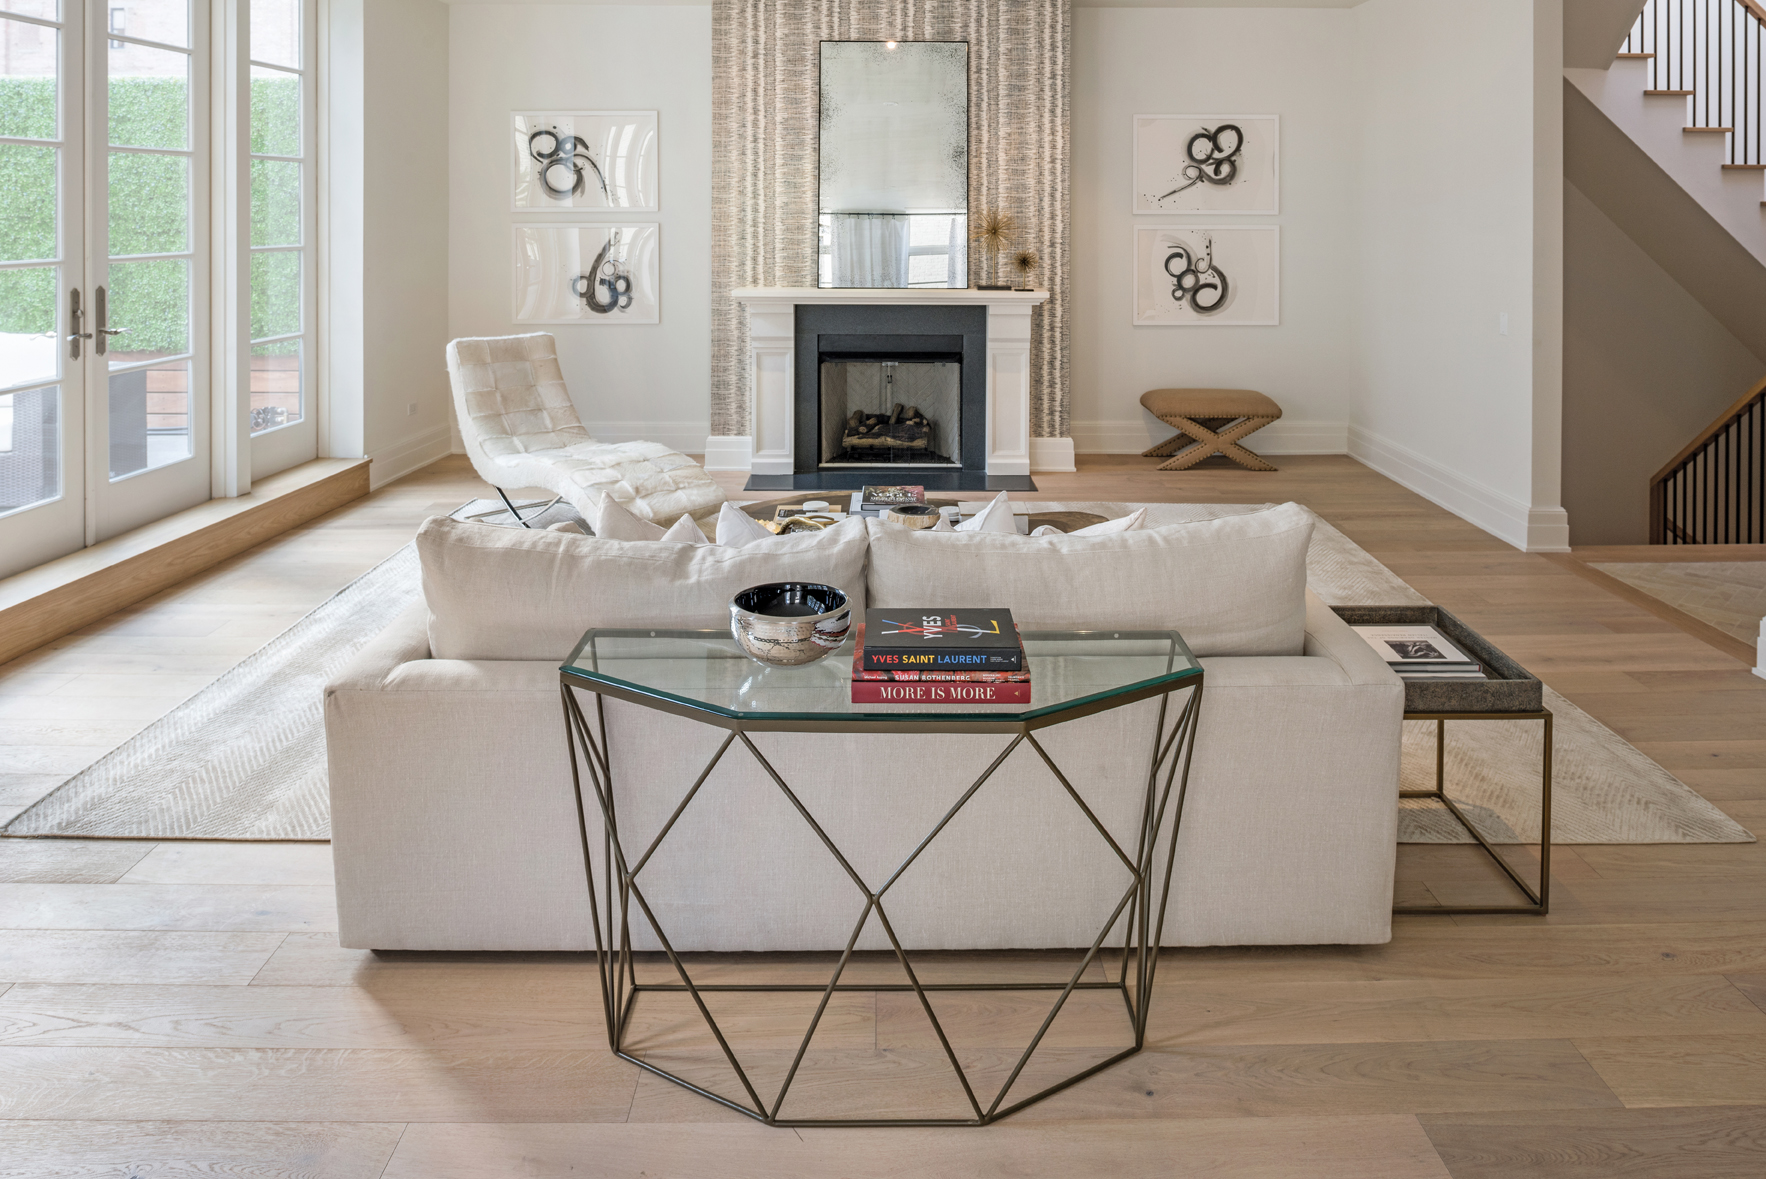 The custom artwork of this living space brings attention directly to the fireplace, which is extended in size and effect through the wallpaper detail and use of a mirror to extend the length of the room.